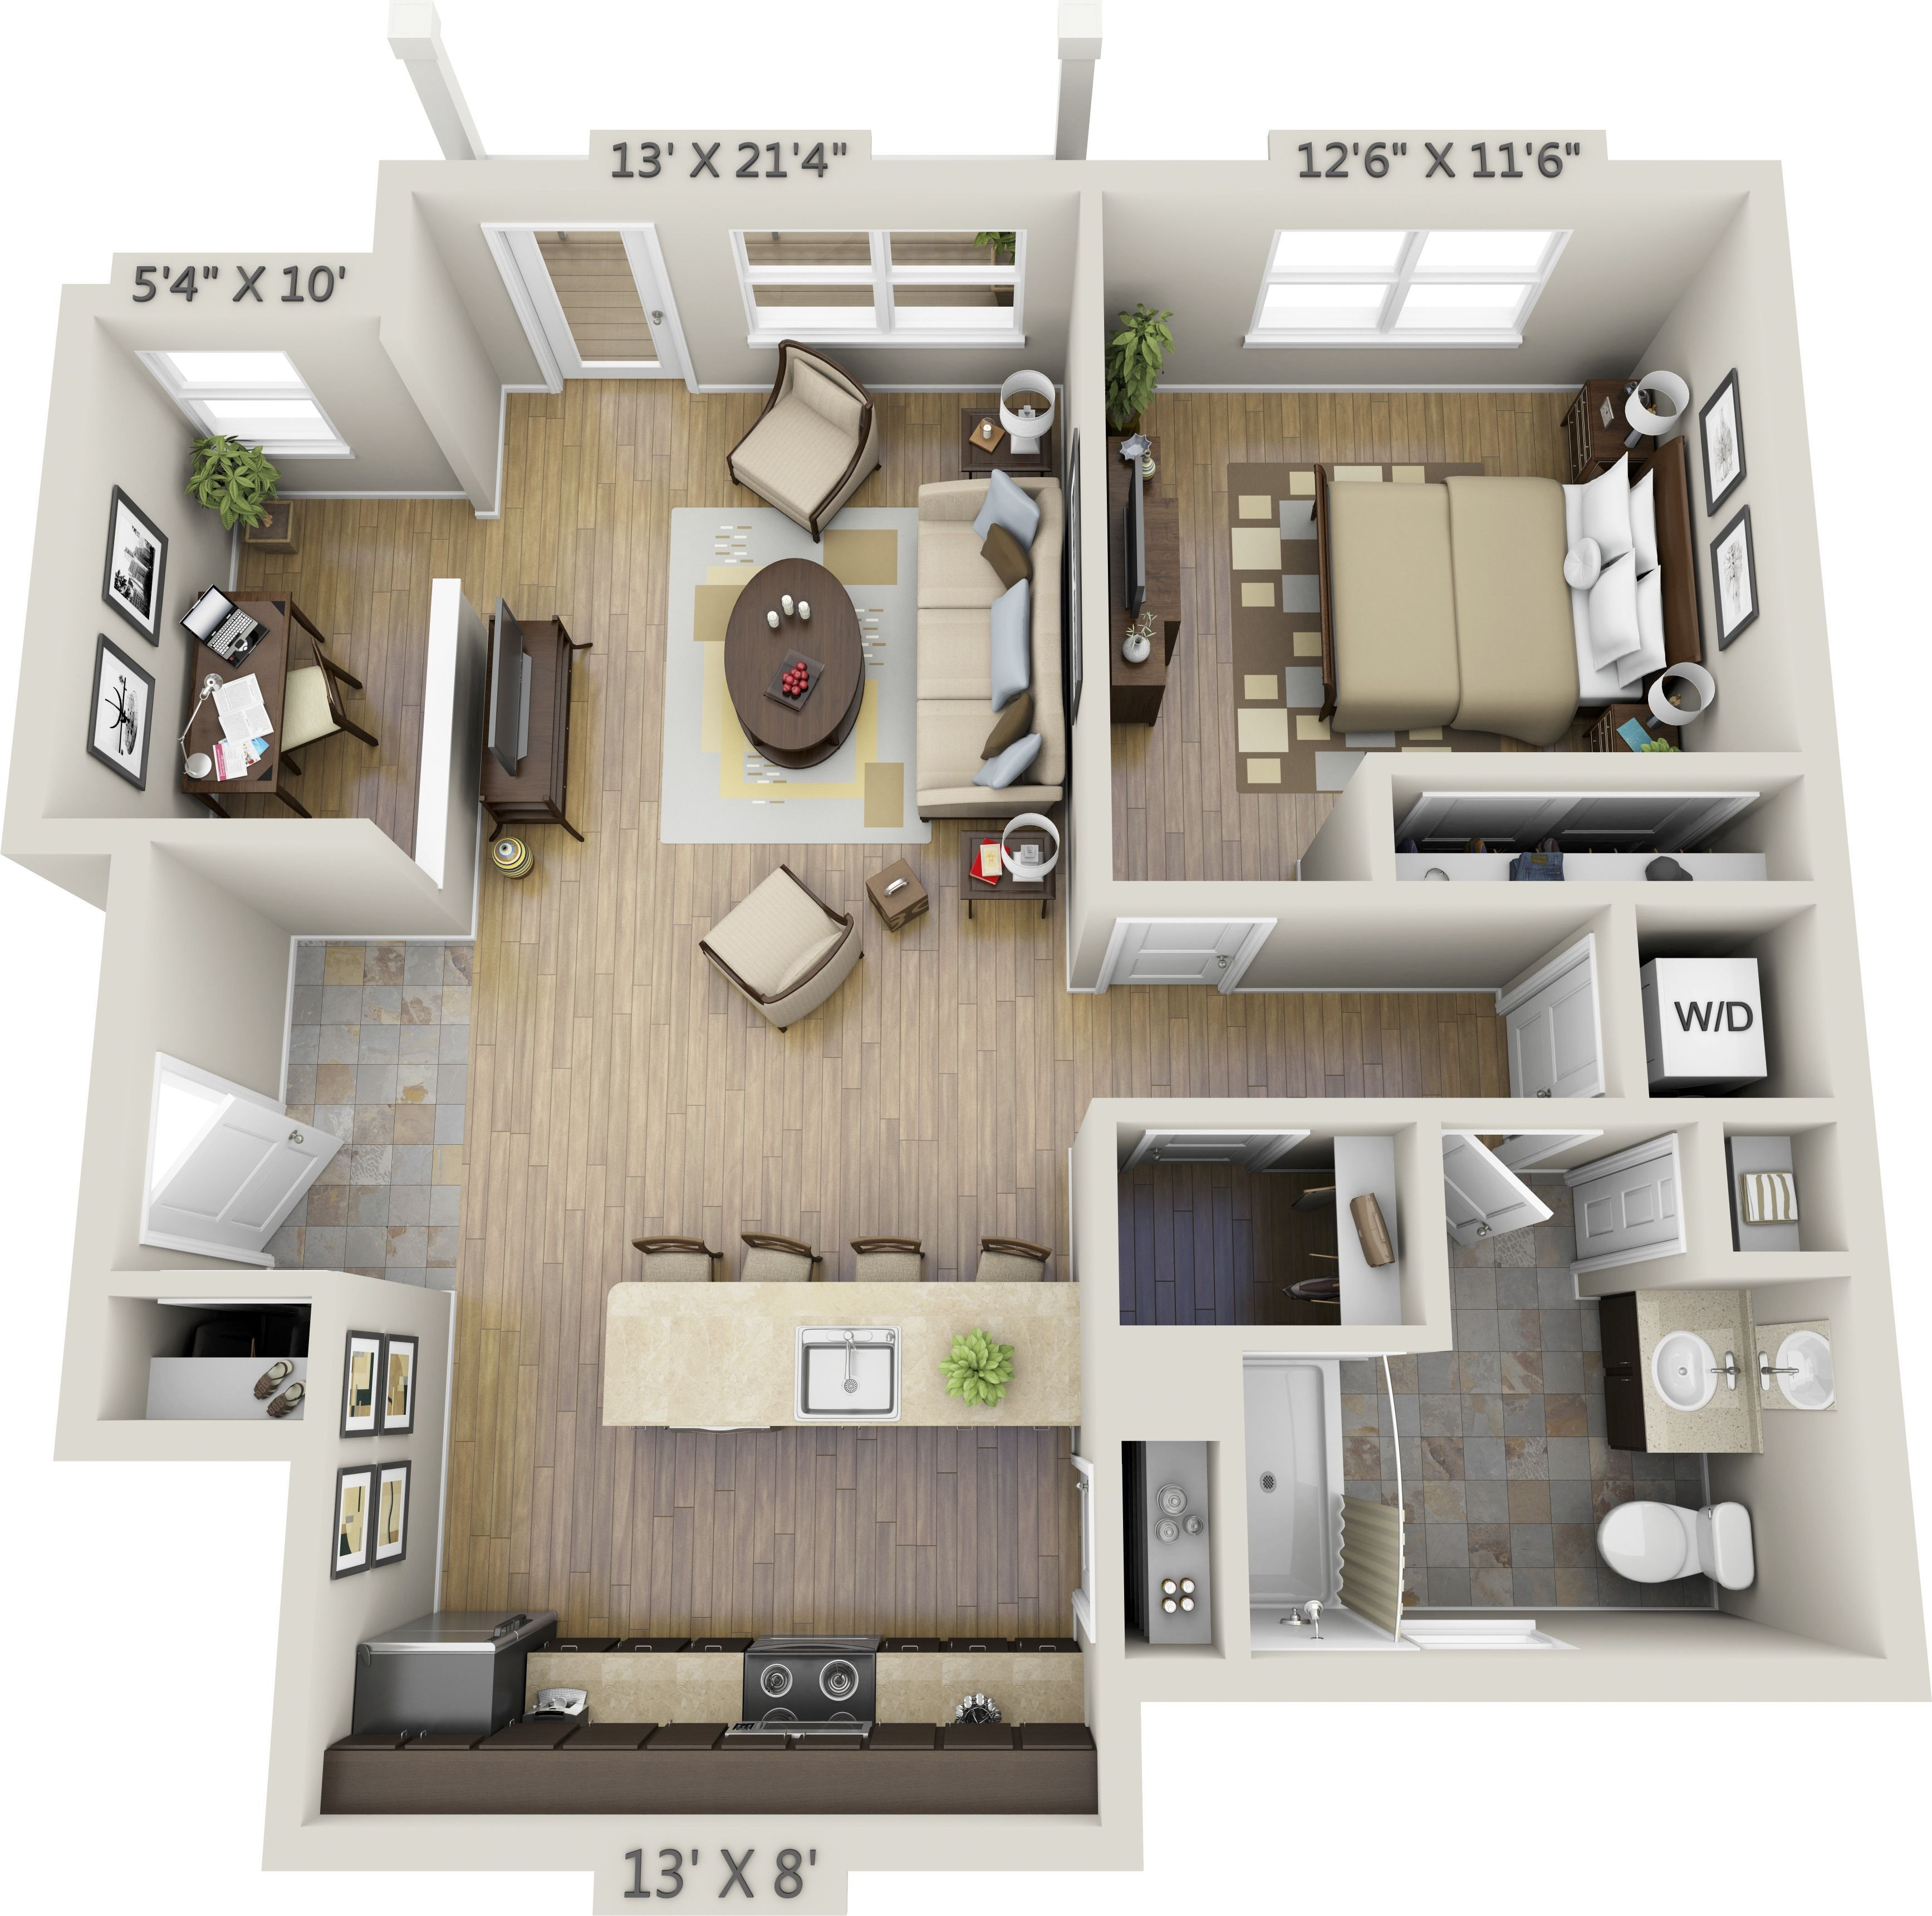 Image Result For 1 Bedroom 3d Floor Plan Sims House Plans One Bedroom House One Bedroom House Plans